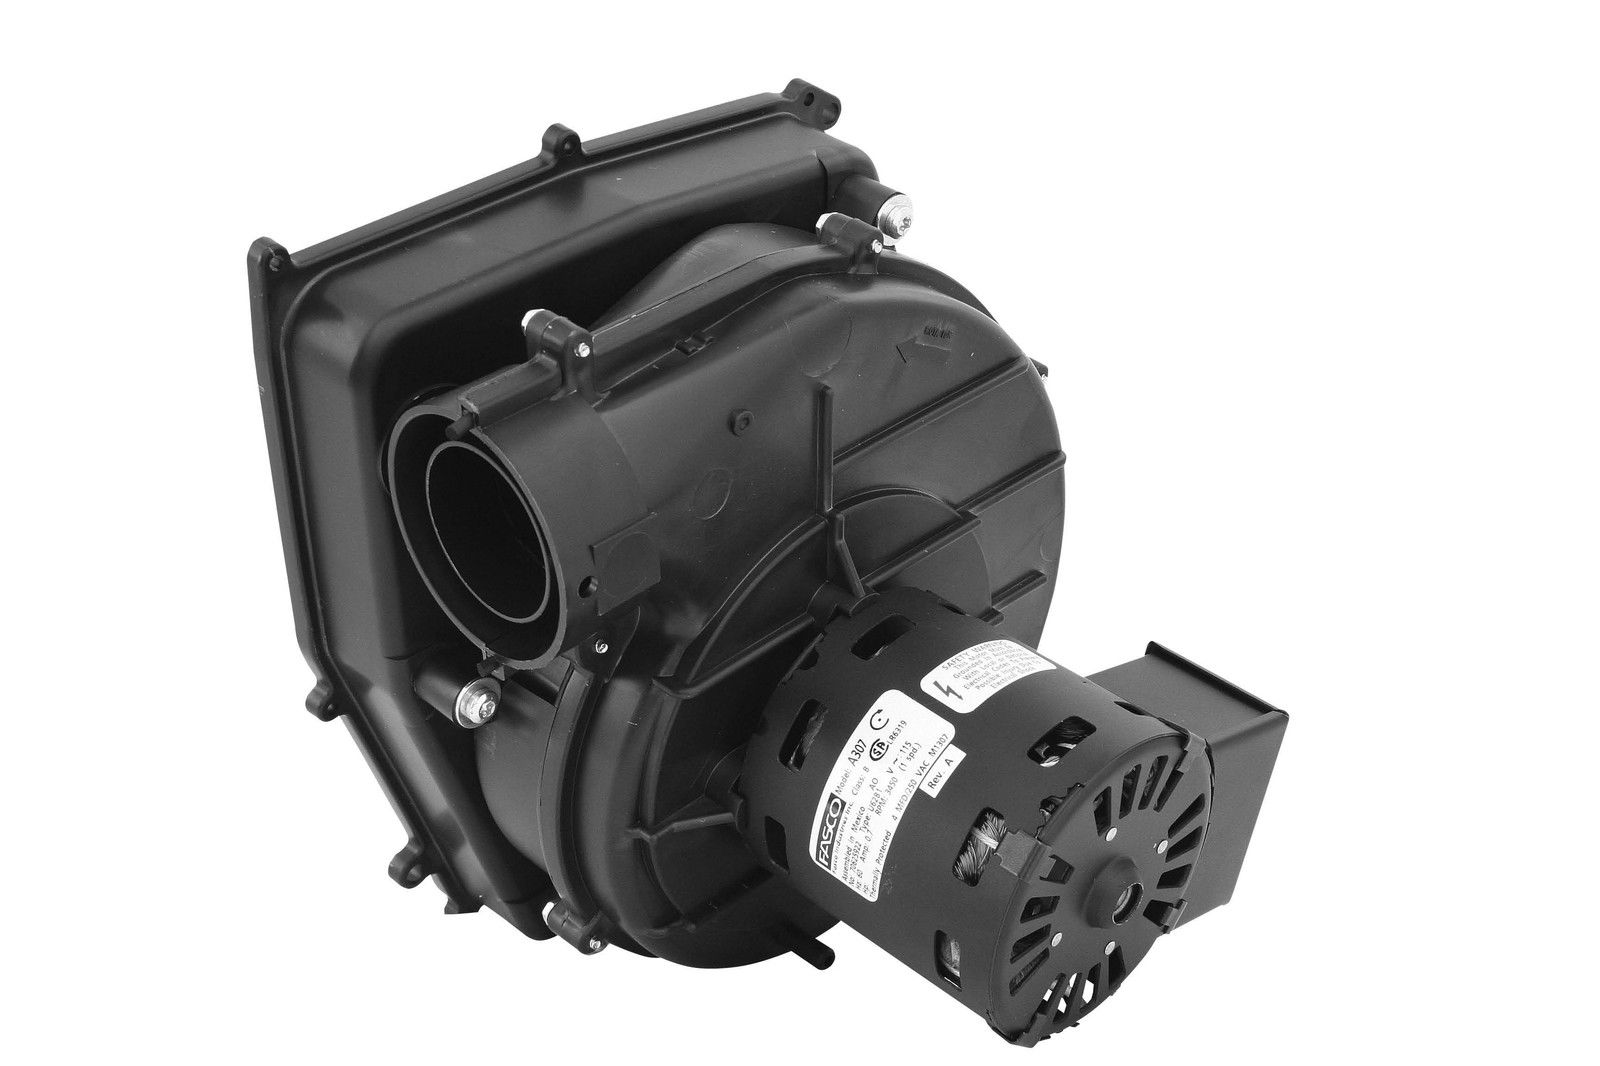 A307 fasco furnace blower motor for icp 7062 5165 7062 for Fasco motors and blowers